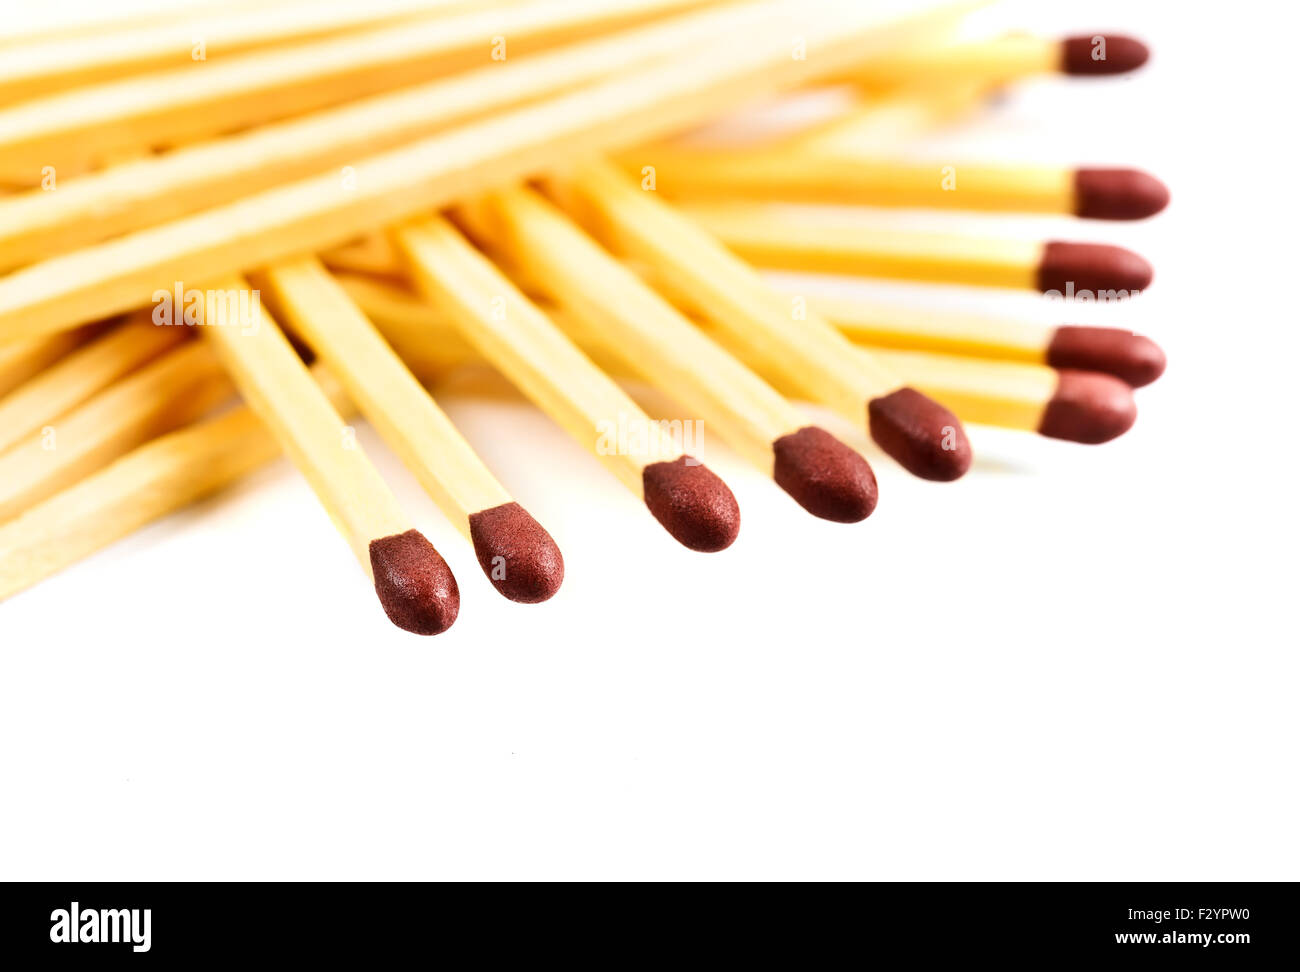 Pile of matches isolated on white - Stock Image